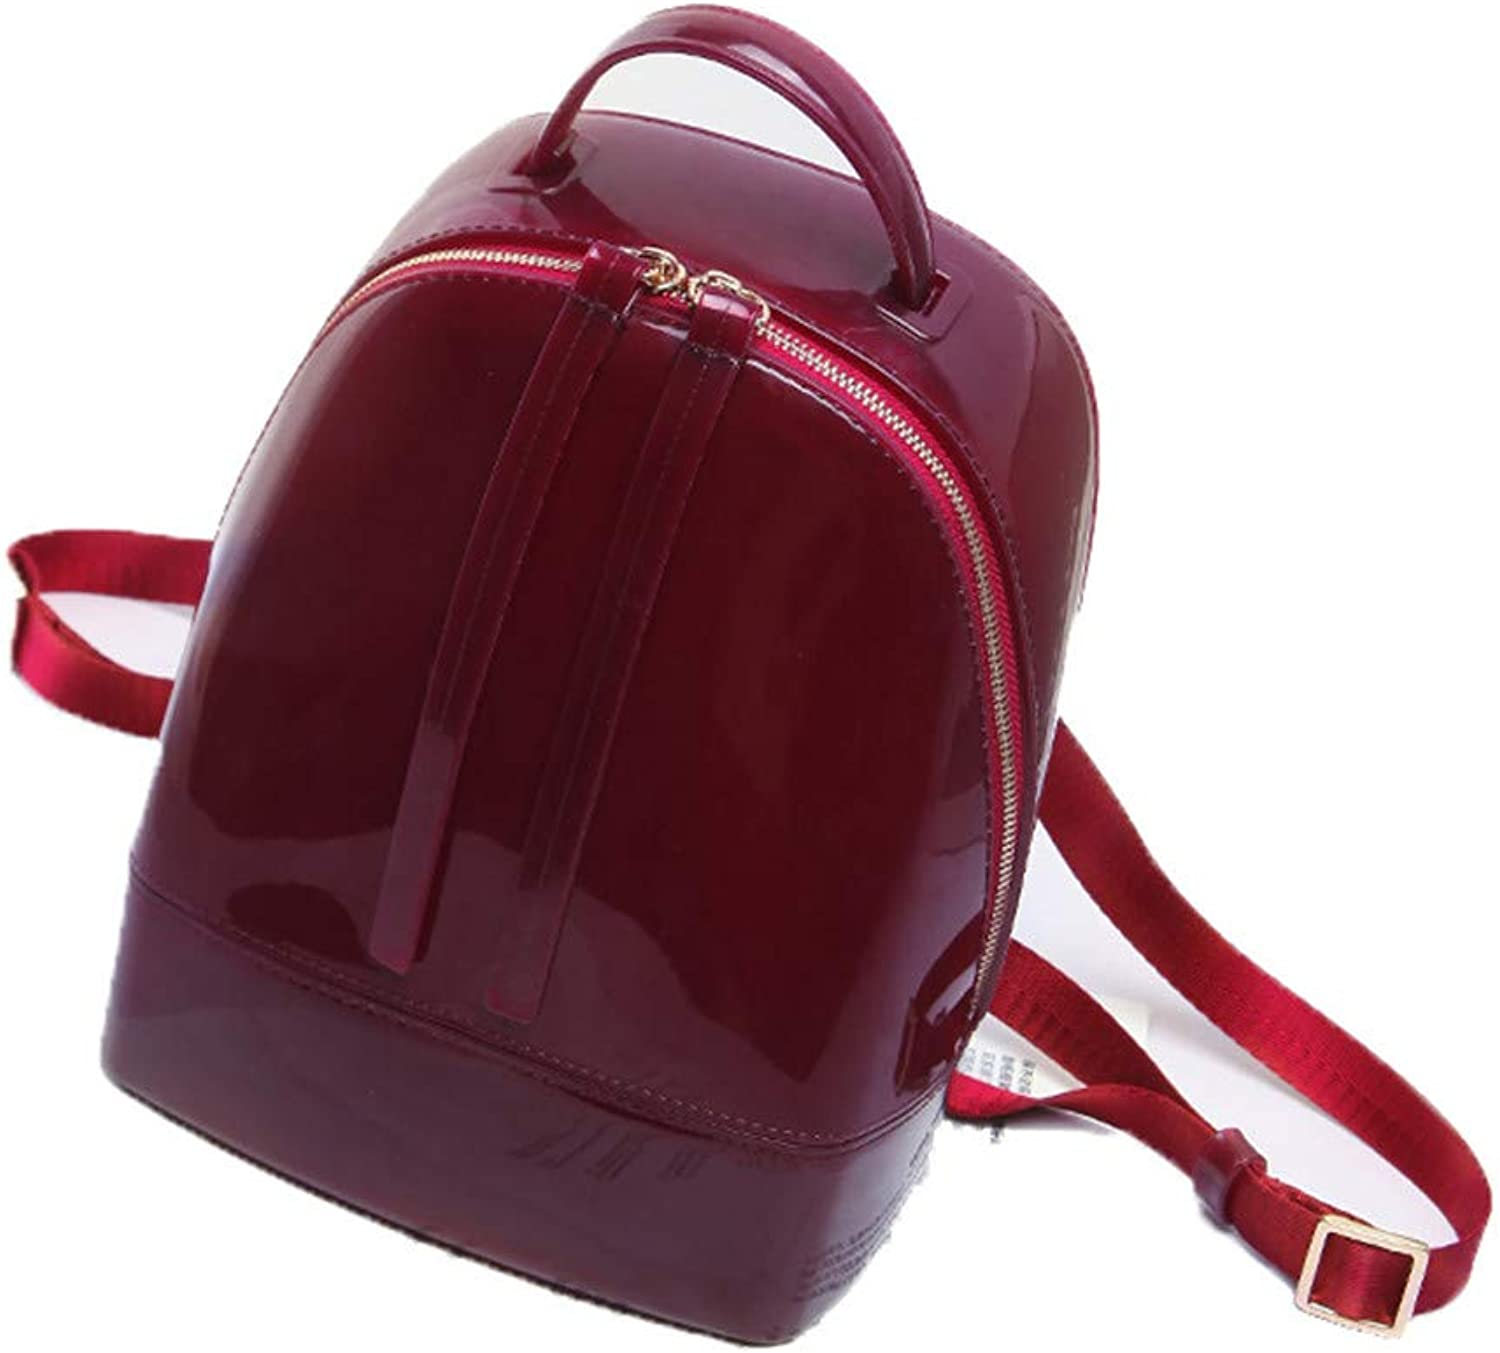 Silicone Backpack Female Travel Bags Girl School Bag Lady Waterproof Jelly Bag Burgundy Small